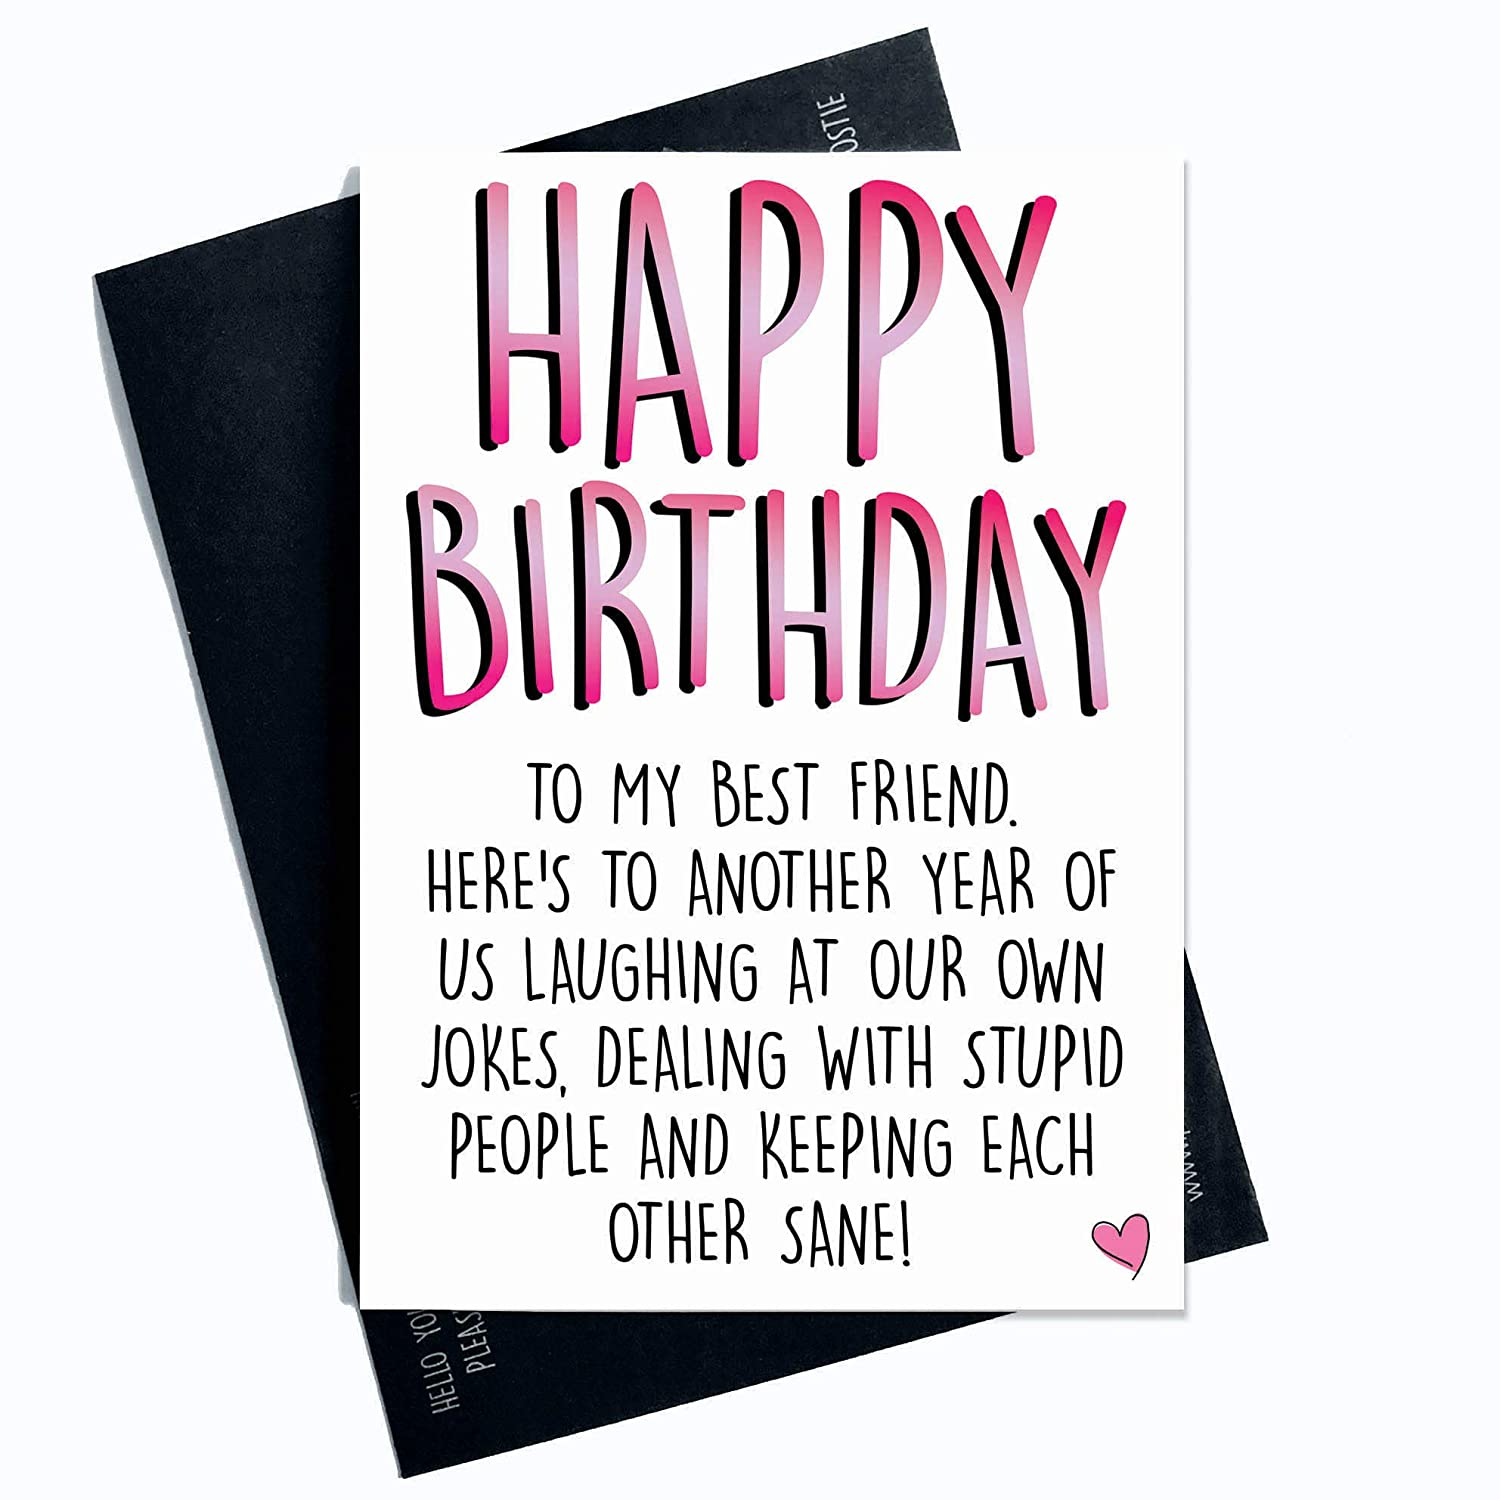 Groovy Best Friend Best Friend Happy Birthday Funny Personalised Birthday Cards Veneteletsinfo